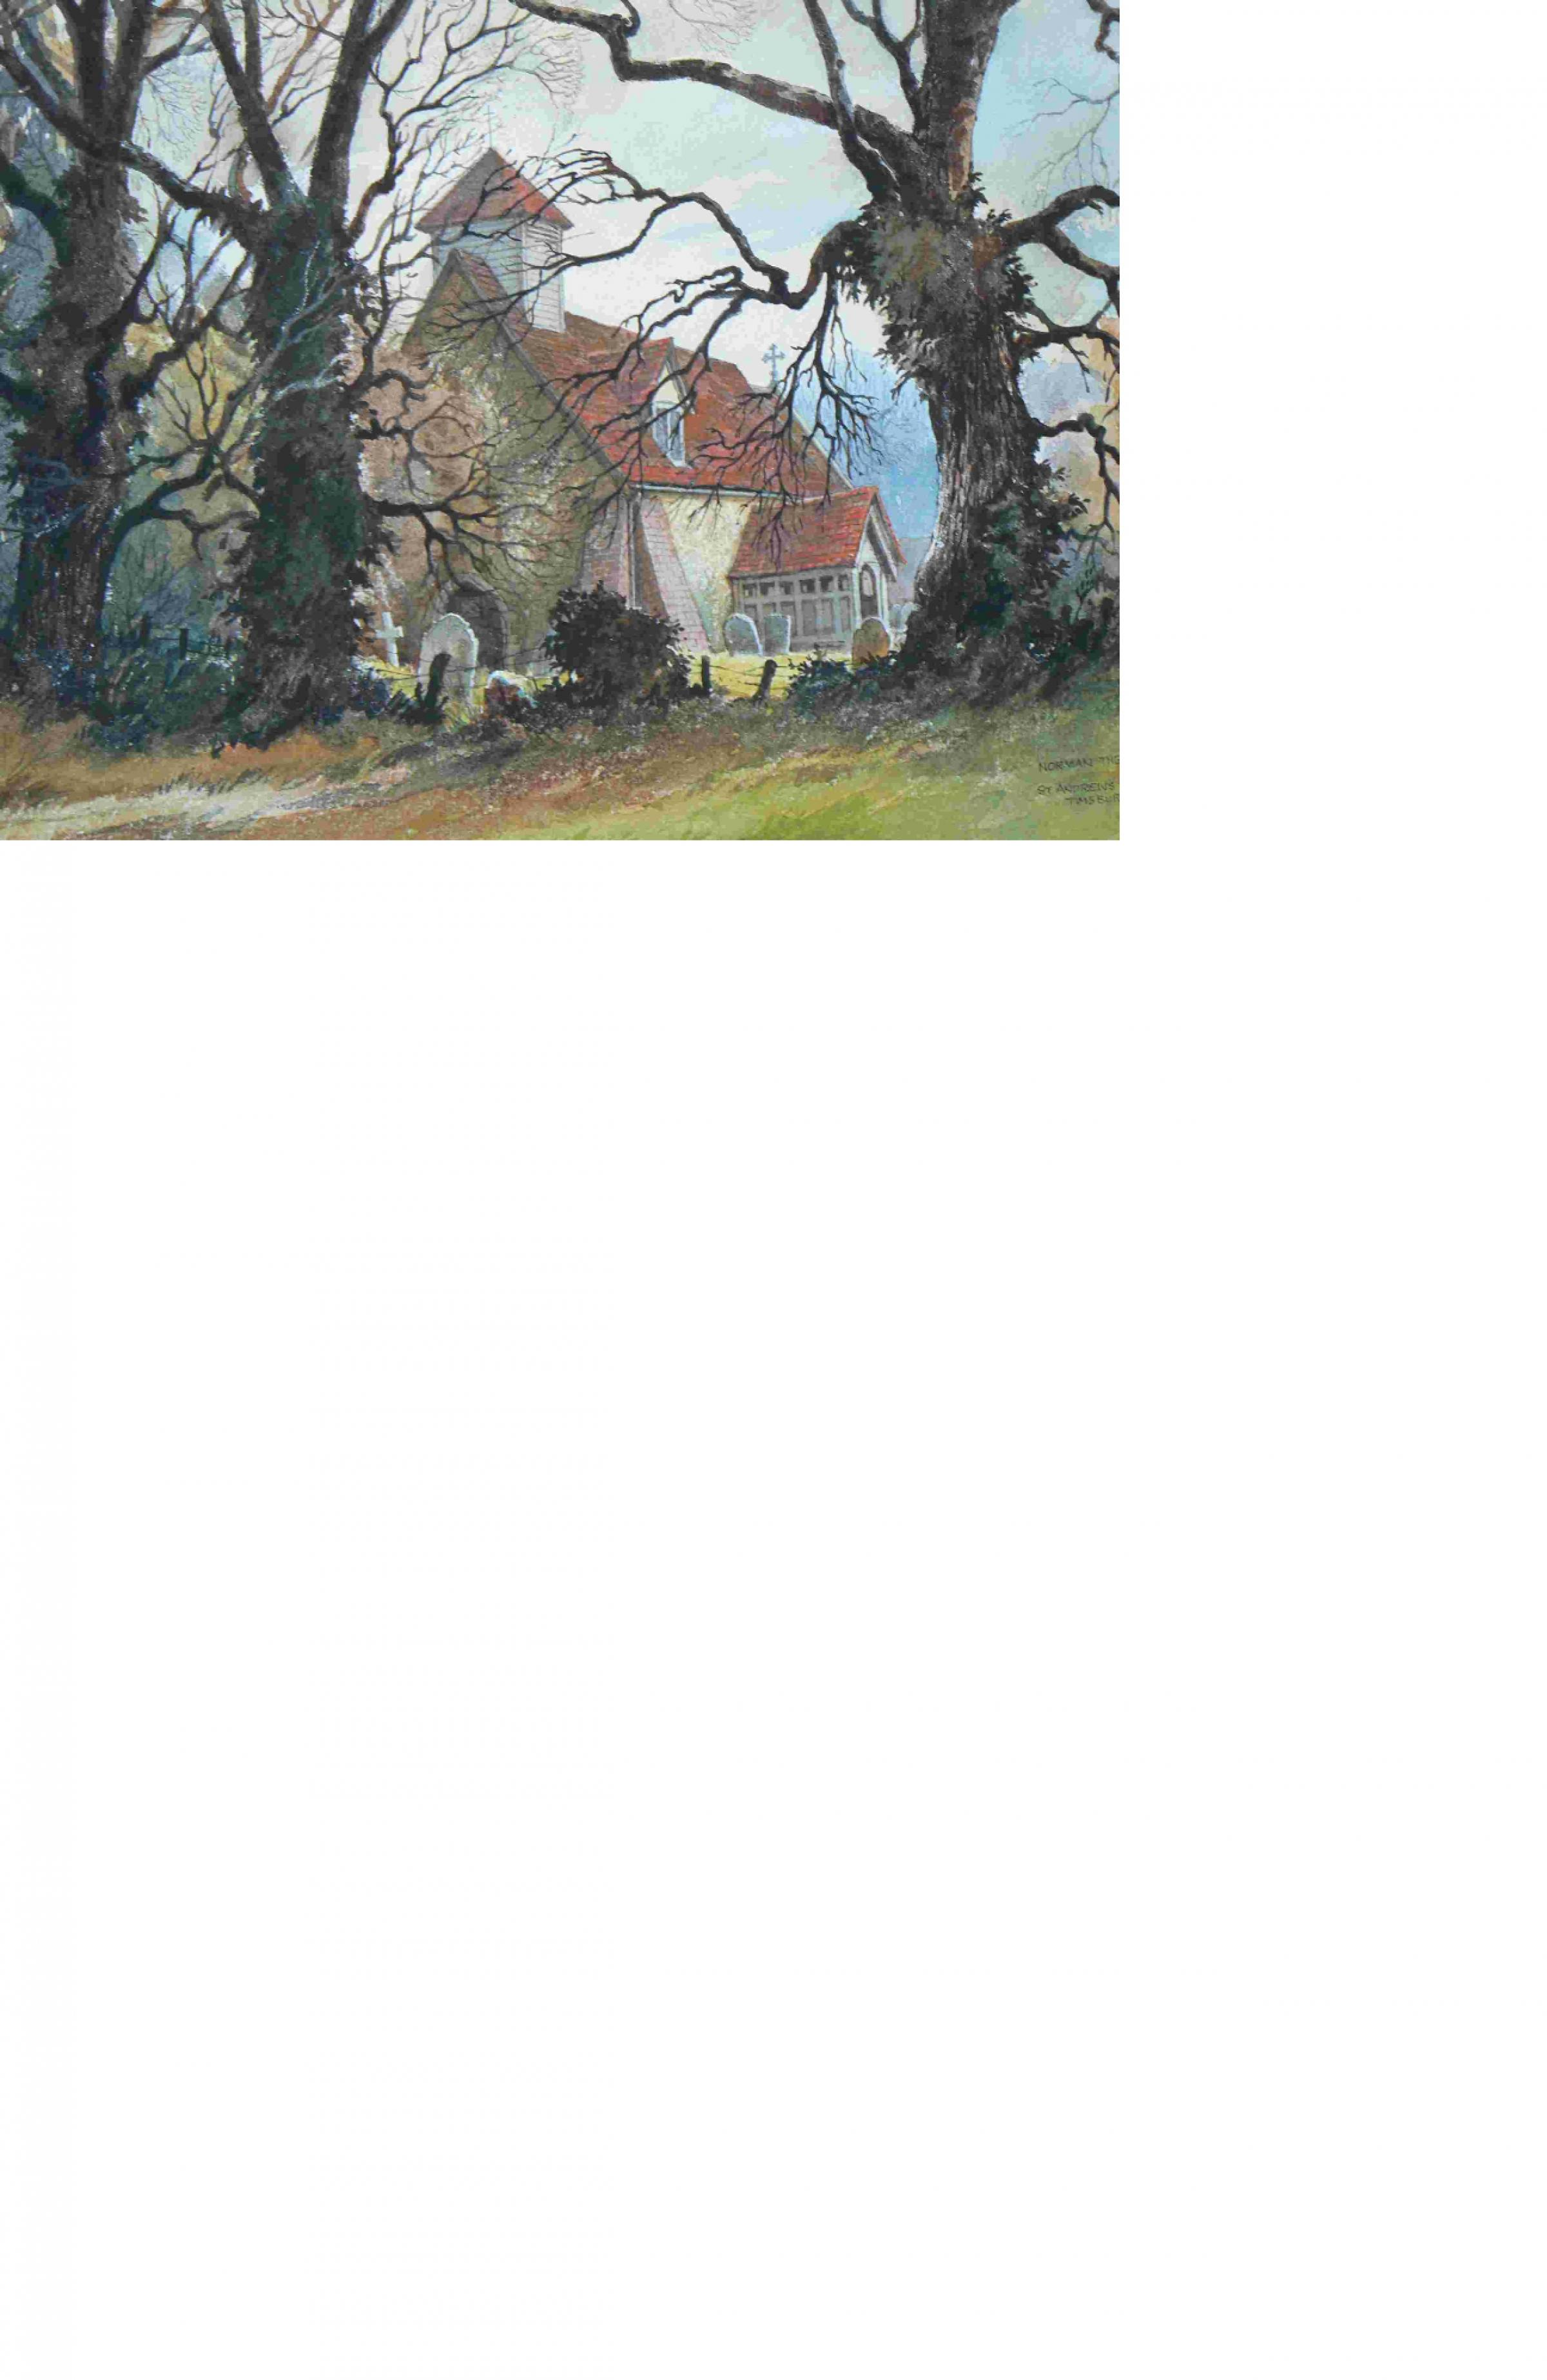 Thelwell's paintingof St Andrew's Church, Timsbury has never been published before